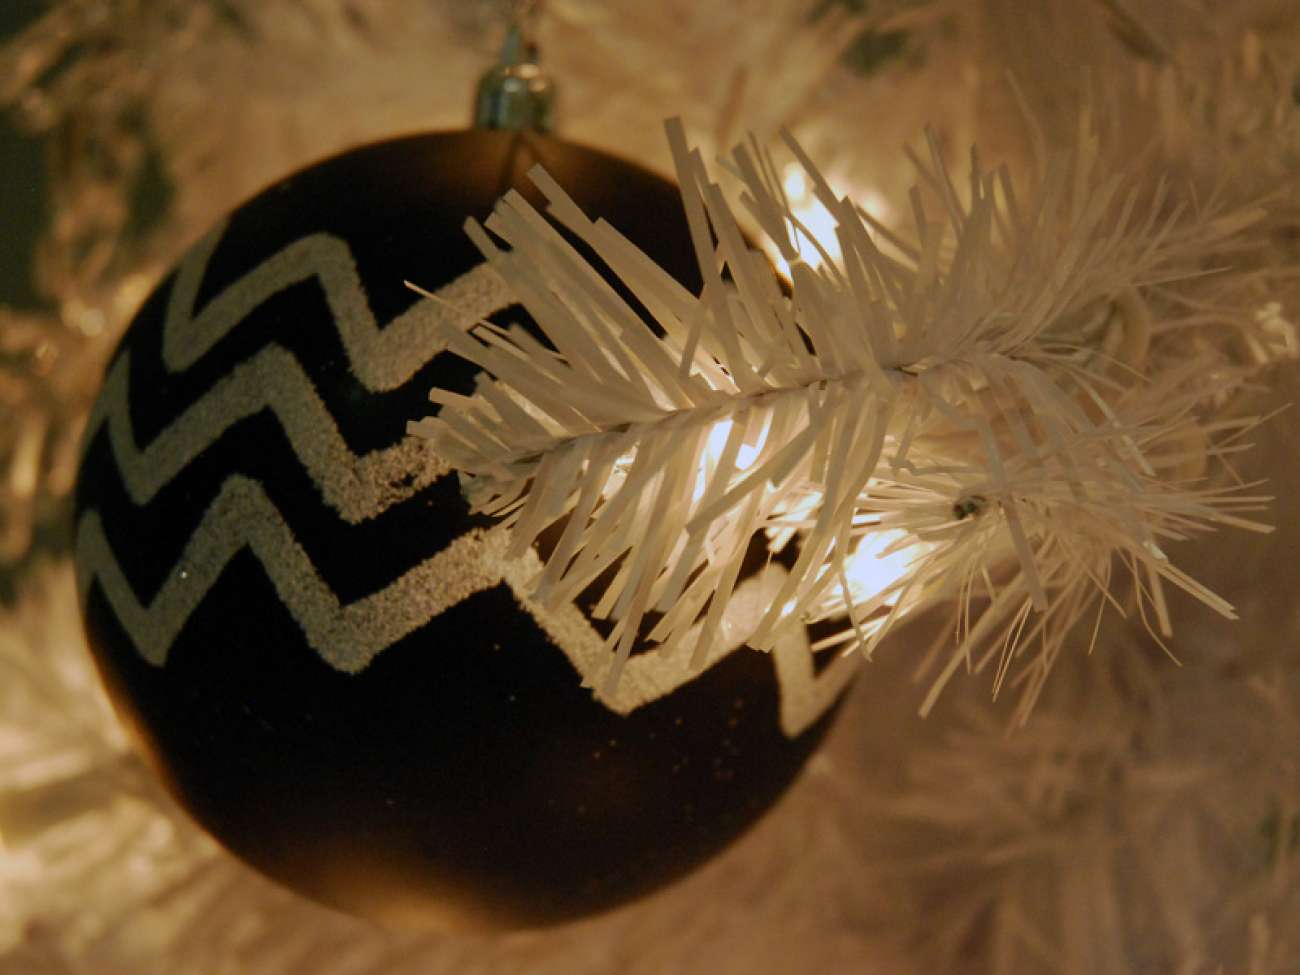 Blake chose a white tree with black ornaments as newborns can more easily see such contrasting tones.